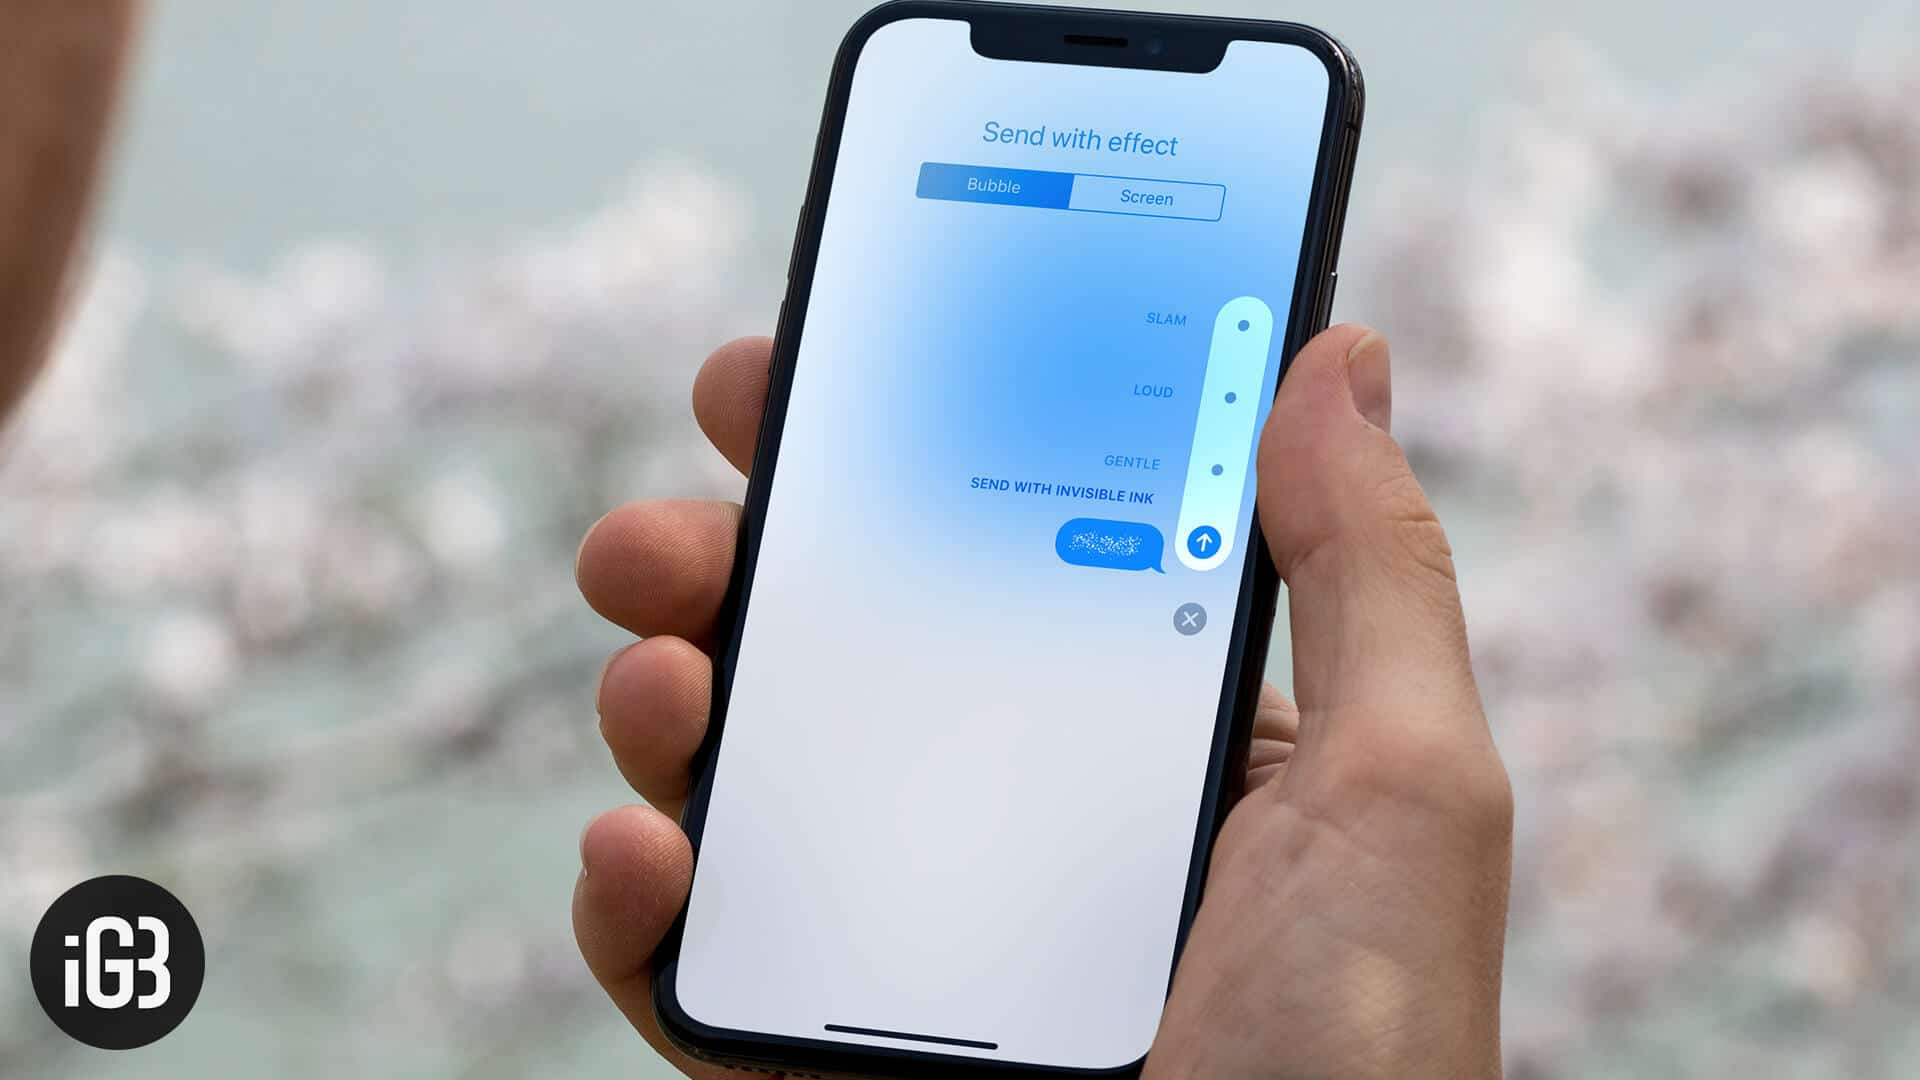 How to Send iMessage with Bubble Effect on iPhone and iPad